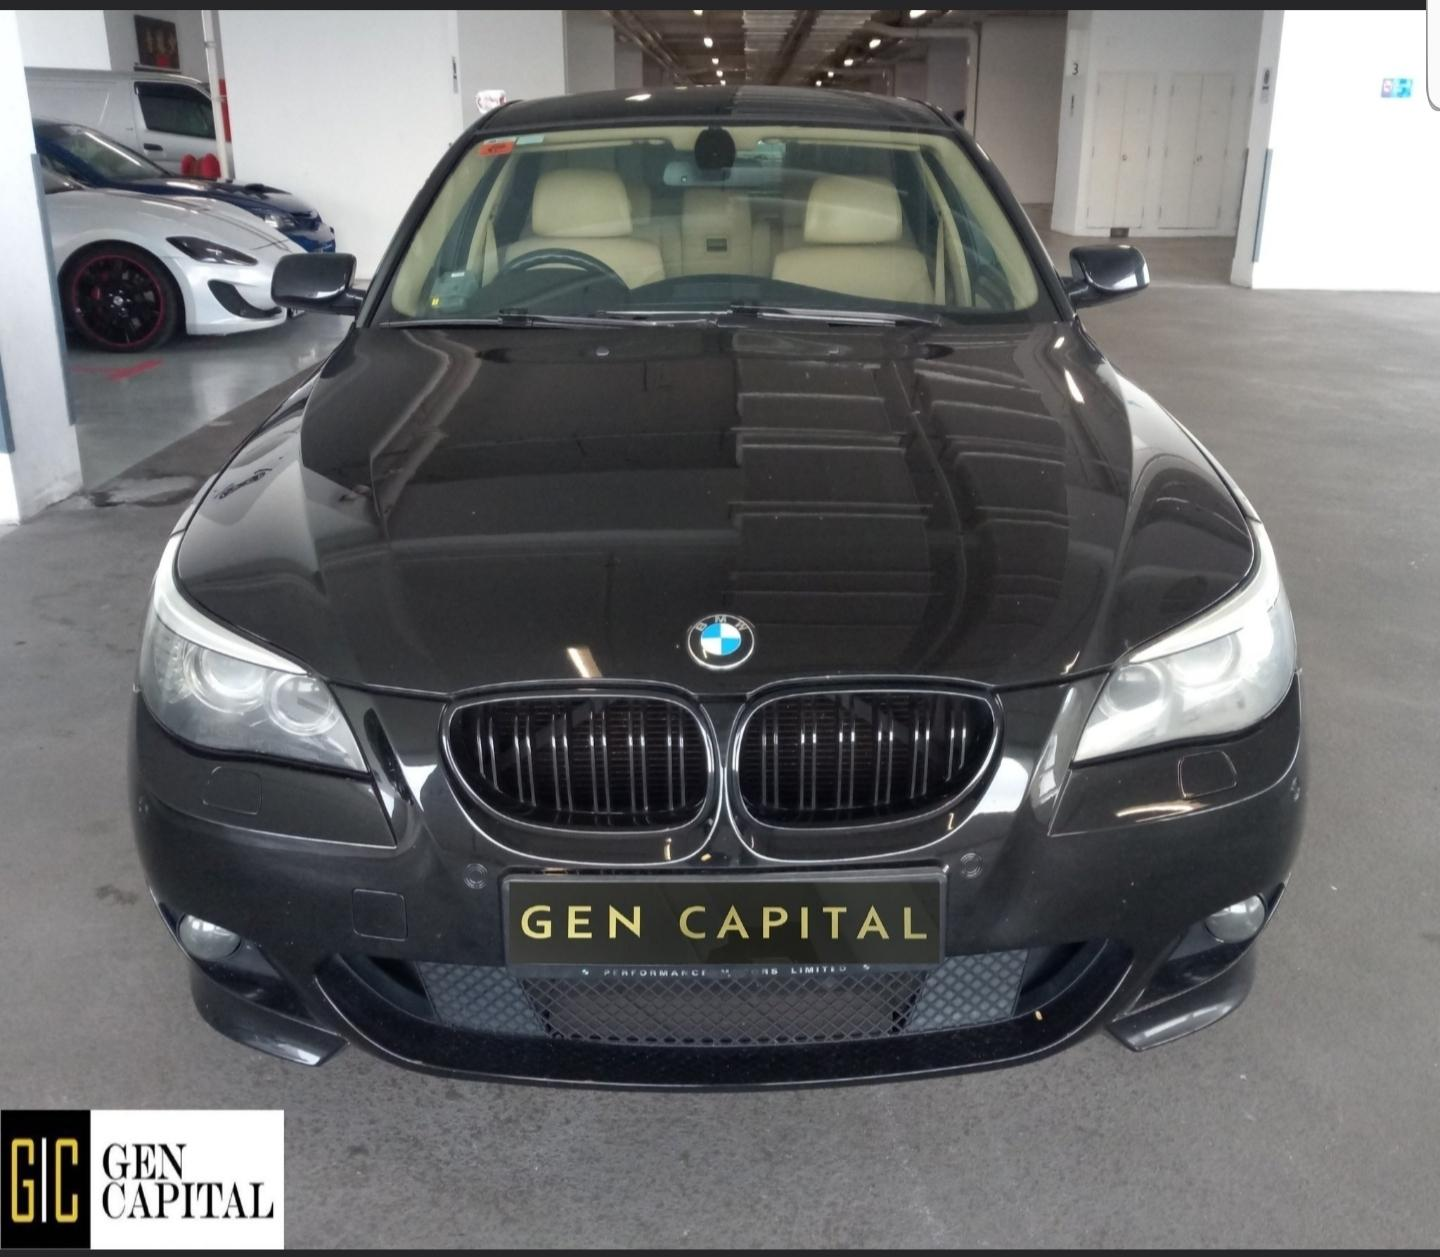 BMW 525i XL Luxury 2010 • Grab Gojek Ryde Tada & Non PHV Car Rental